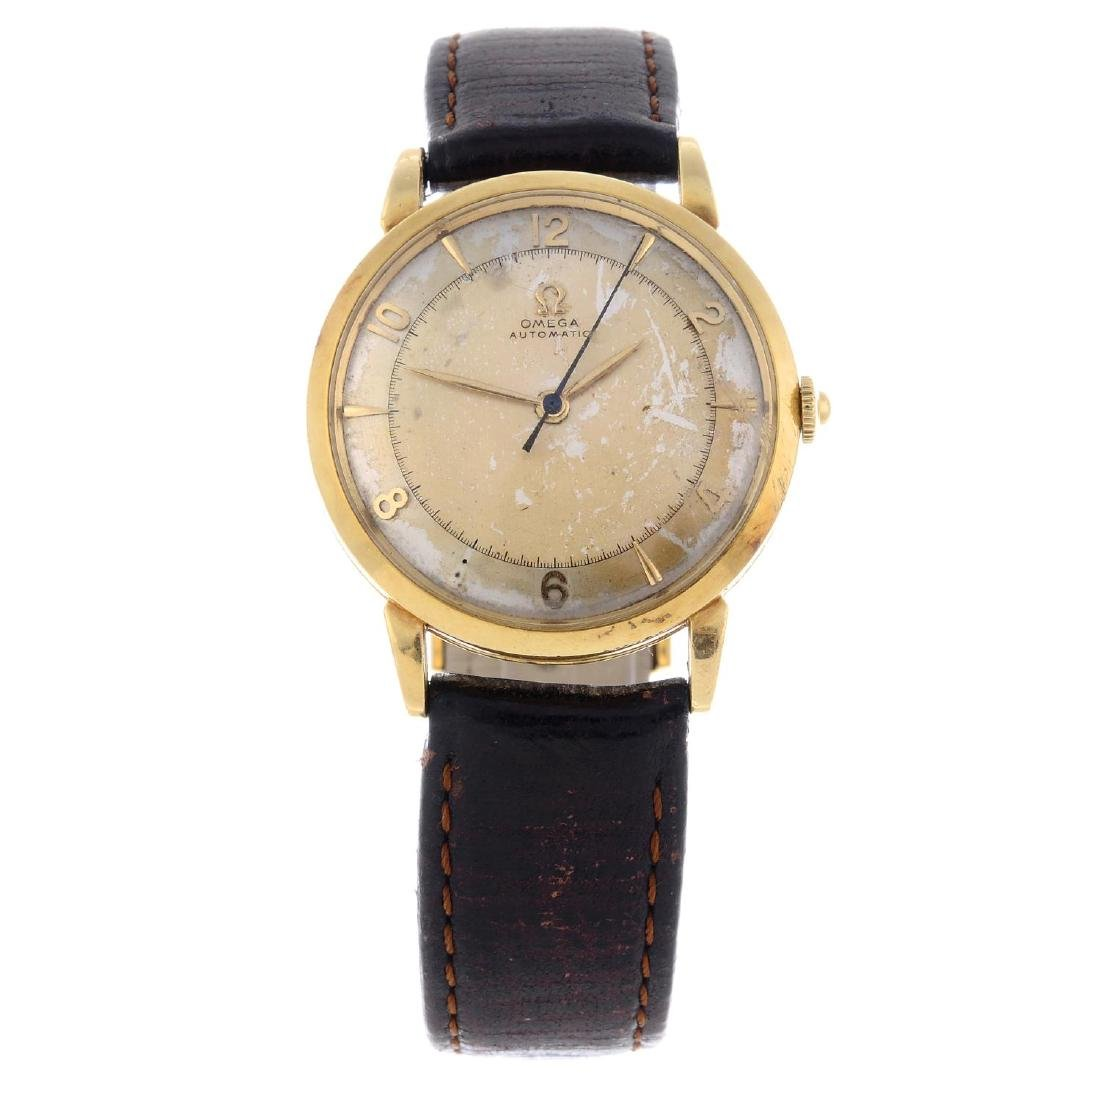 OMEGA - a gentleman's wrist watch. Yellow metal case,